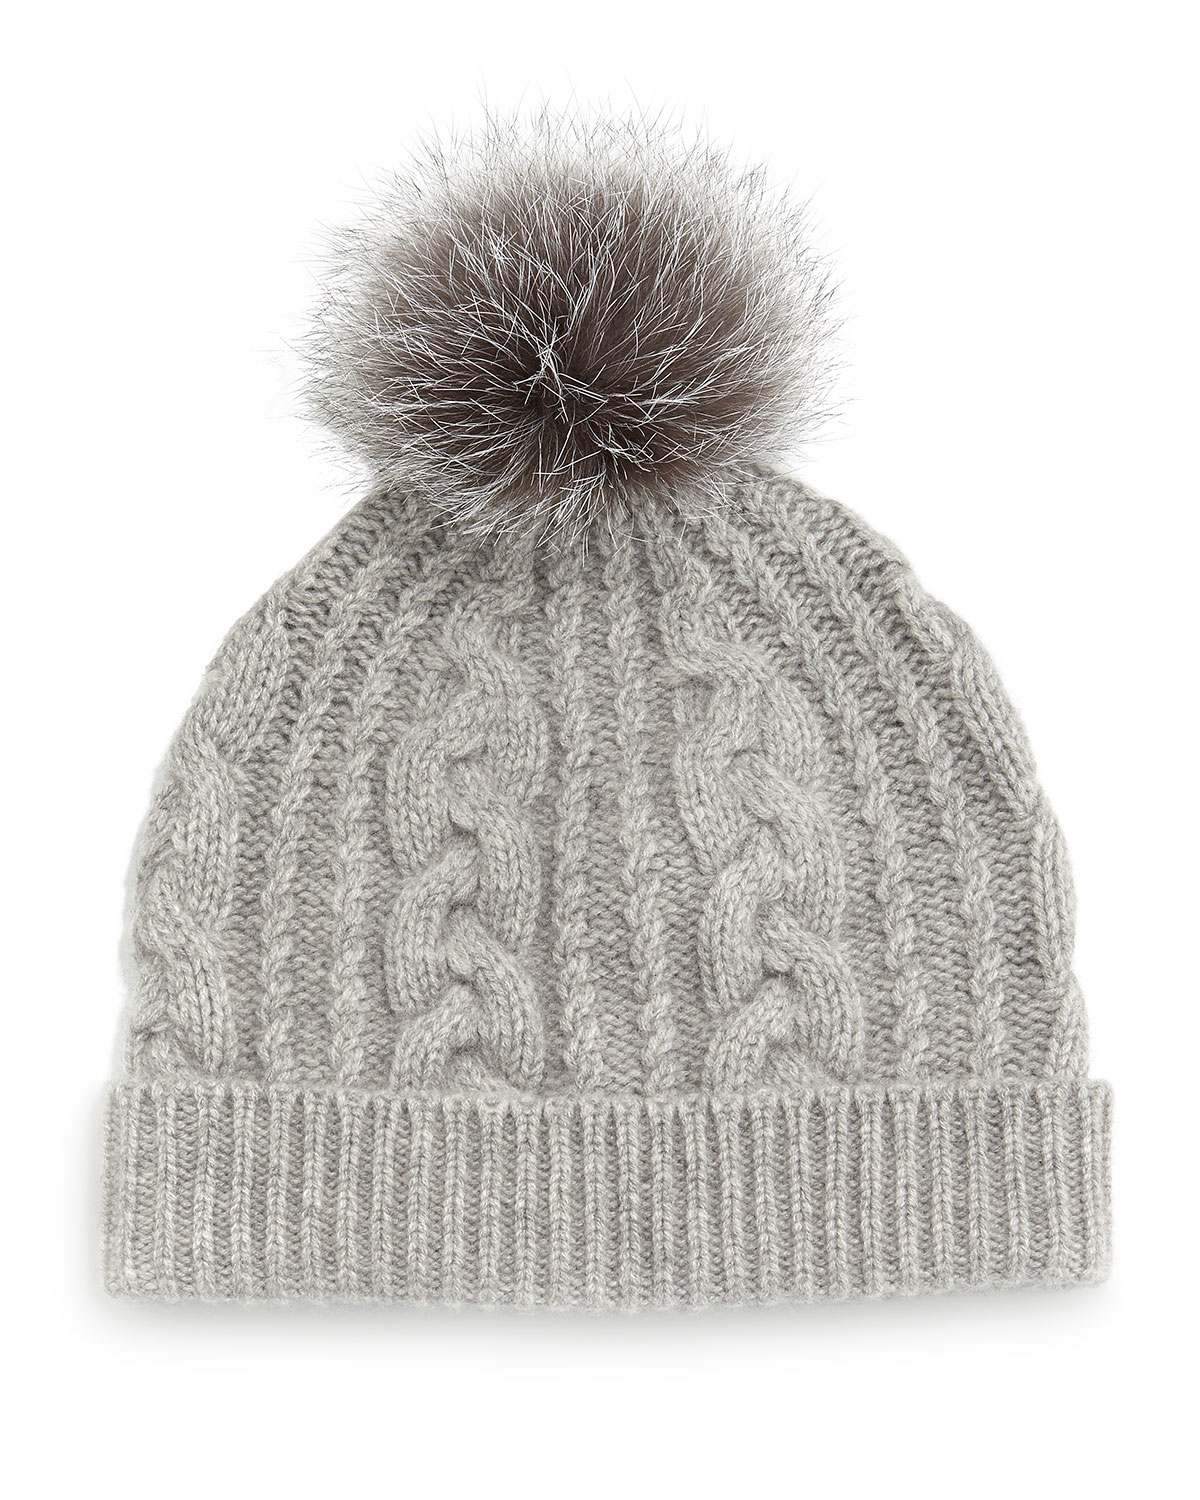 Lyst - Sofia Cashmere Cashmere Cable-knit Hat W fur Pom Pom in Gray 5f9ad9add9c